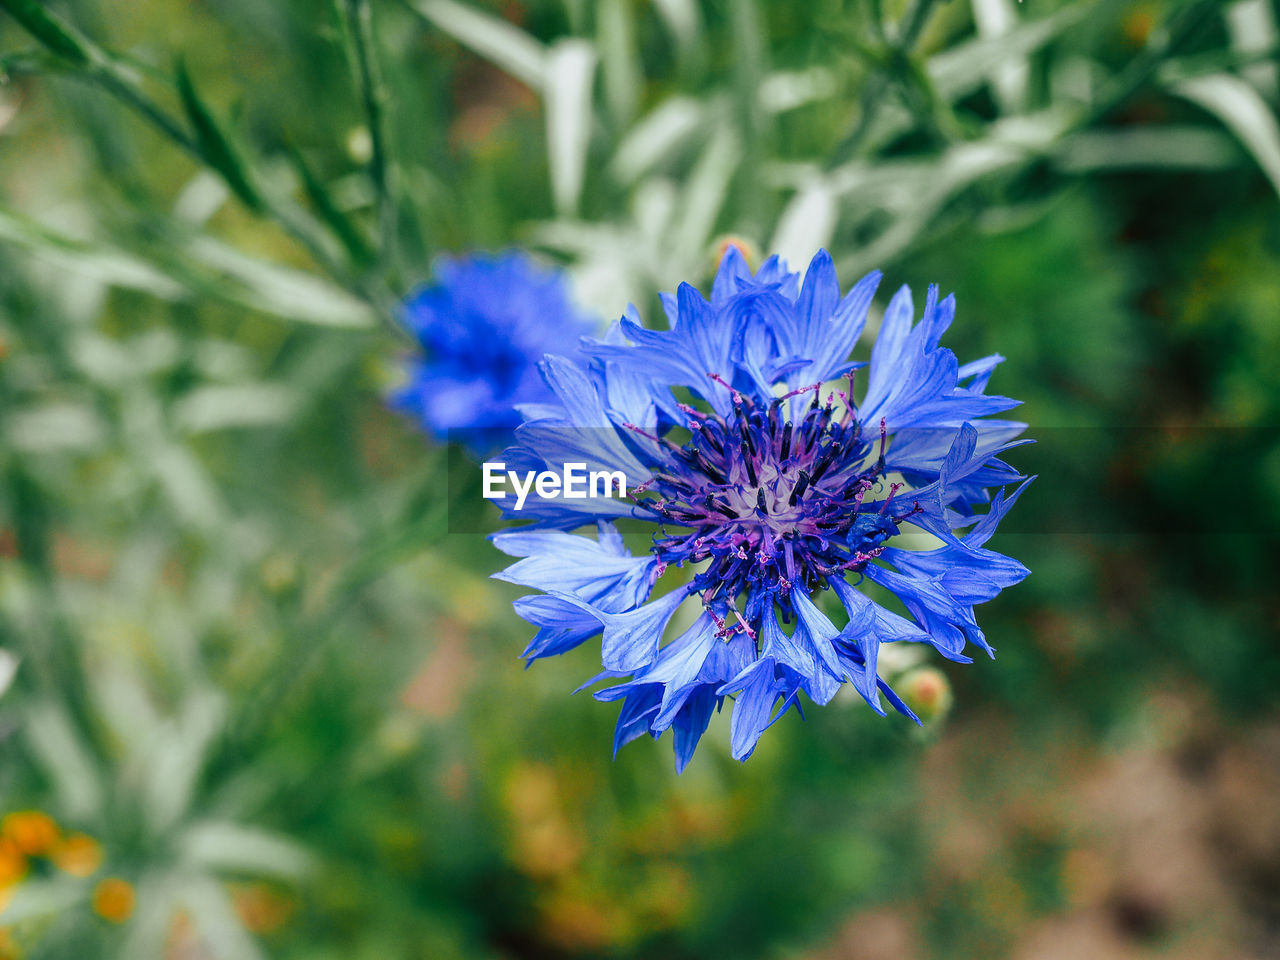 flower, nature, growth, plant, purple, beauty in nature, blue, blooming, no people, outdoors, freshness, close-up, day